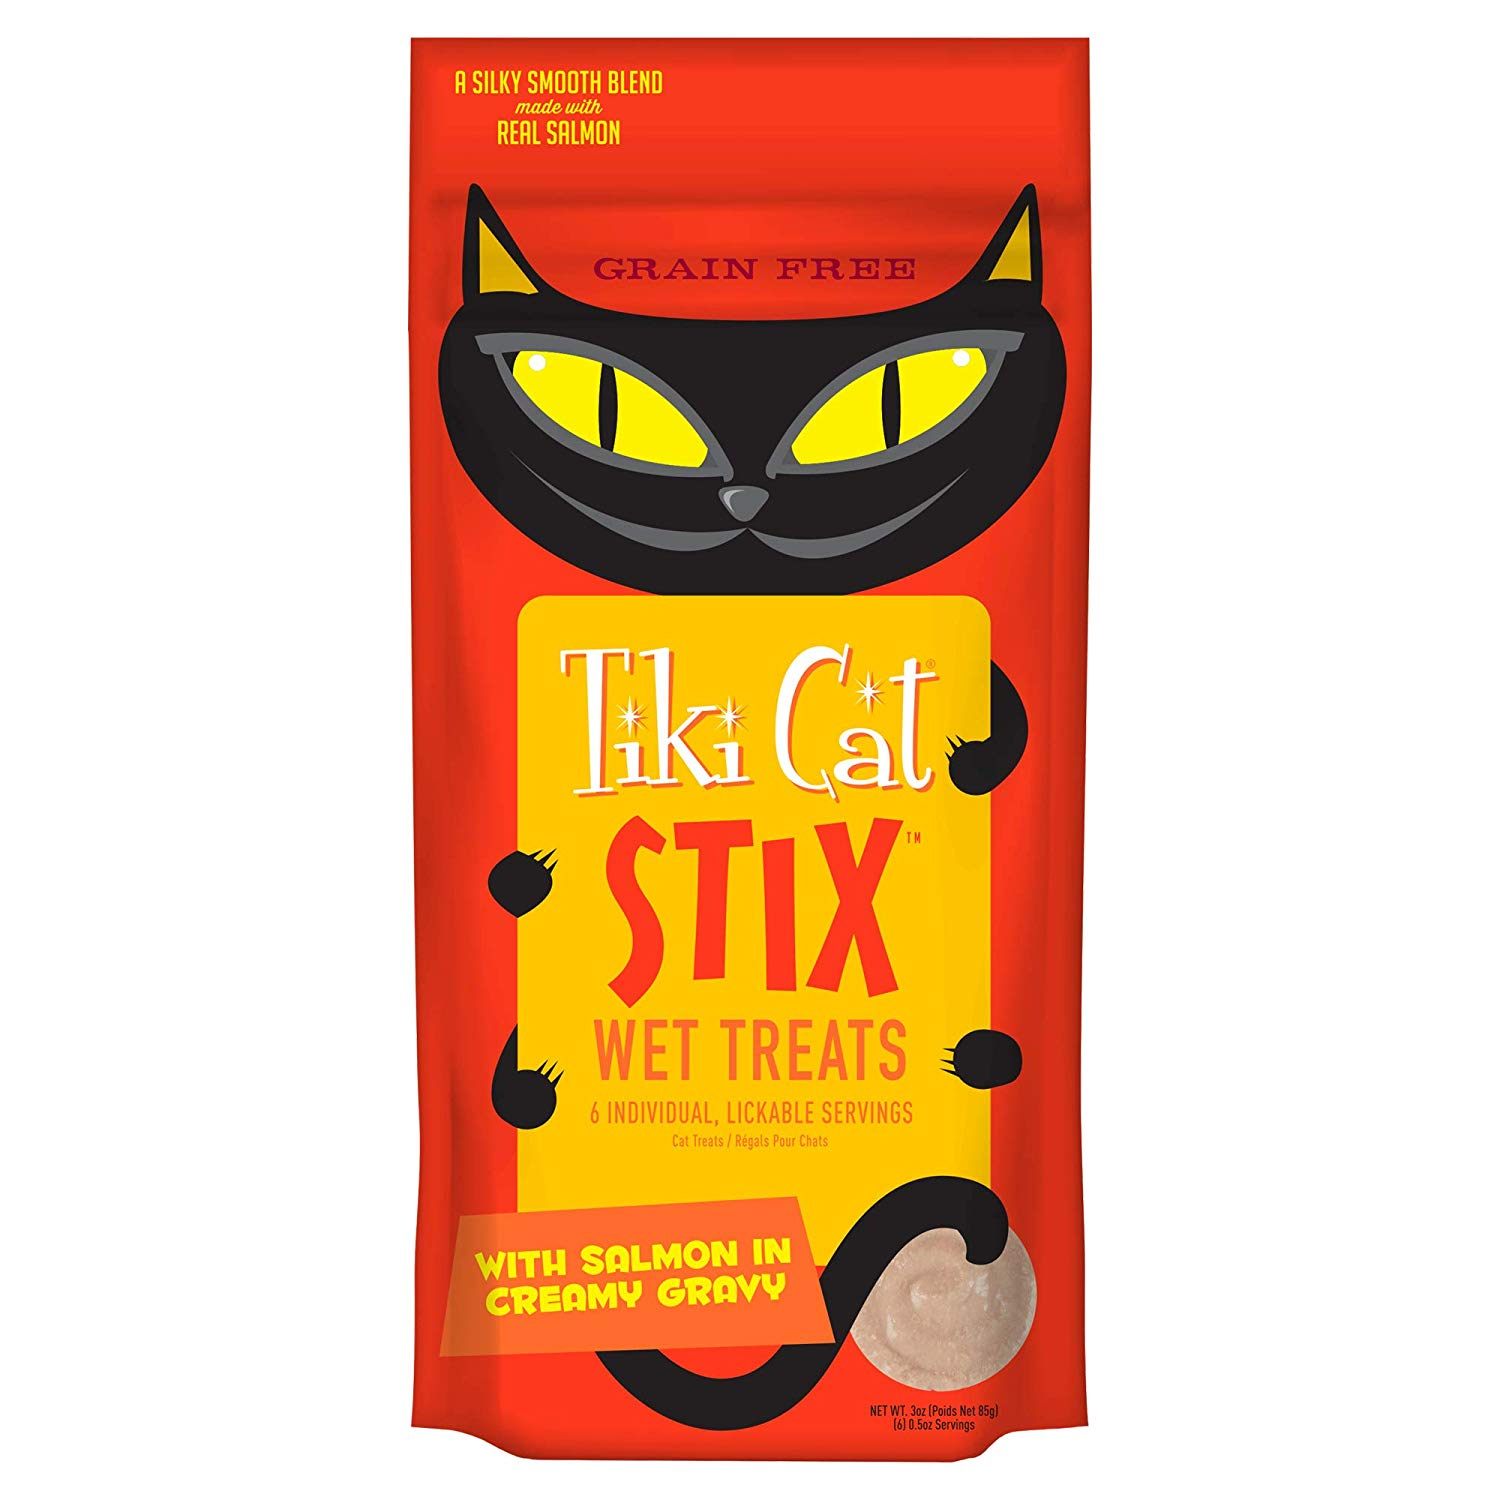 Tiki Cat Stix Salmon in Creamy Gravy Wet Cat Treats, 6-pack